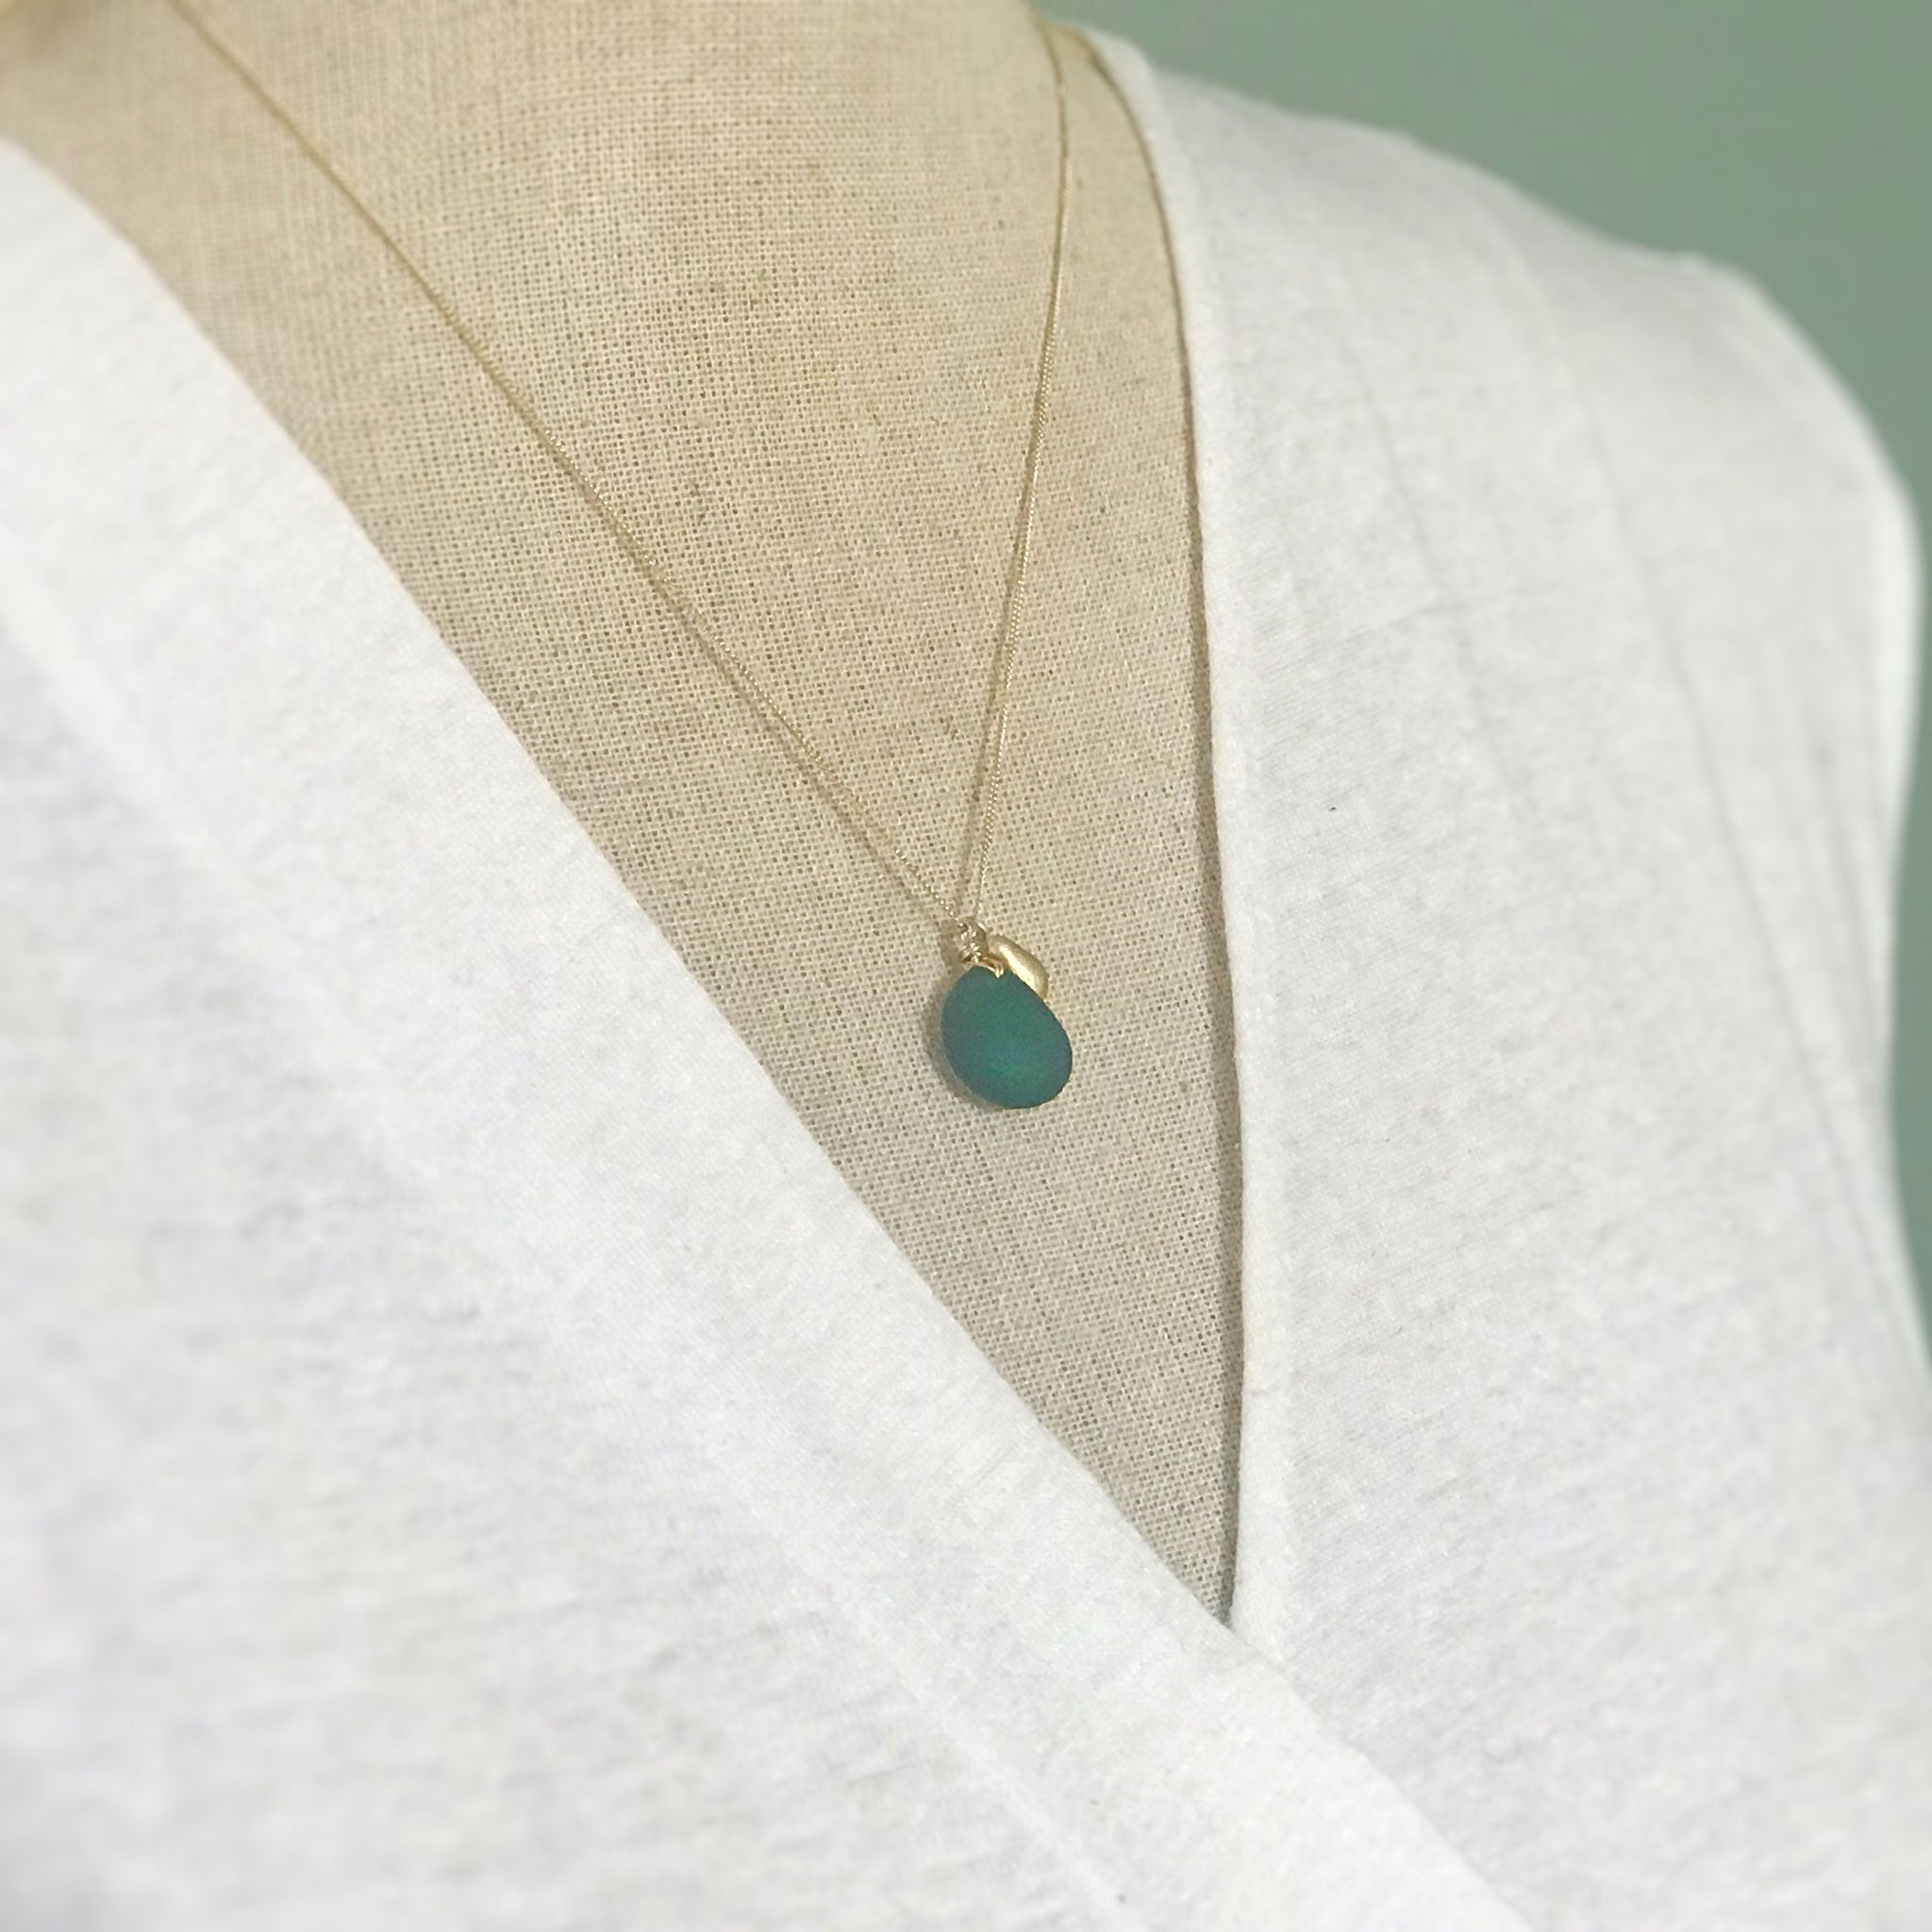 teal seaglass charm necklace on gold chain with solid 14k gold teardrop charm Kriket Broadhurst jewellery Australian made